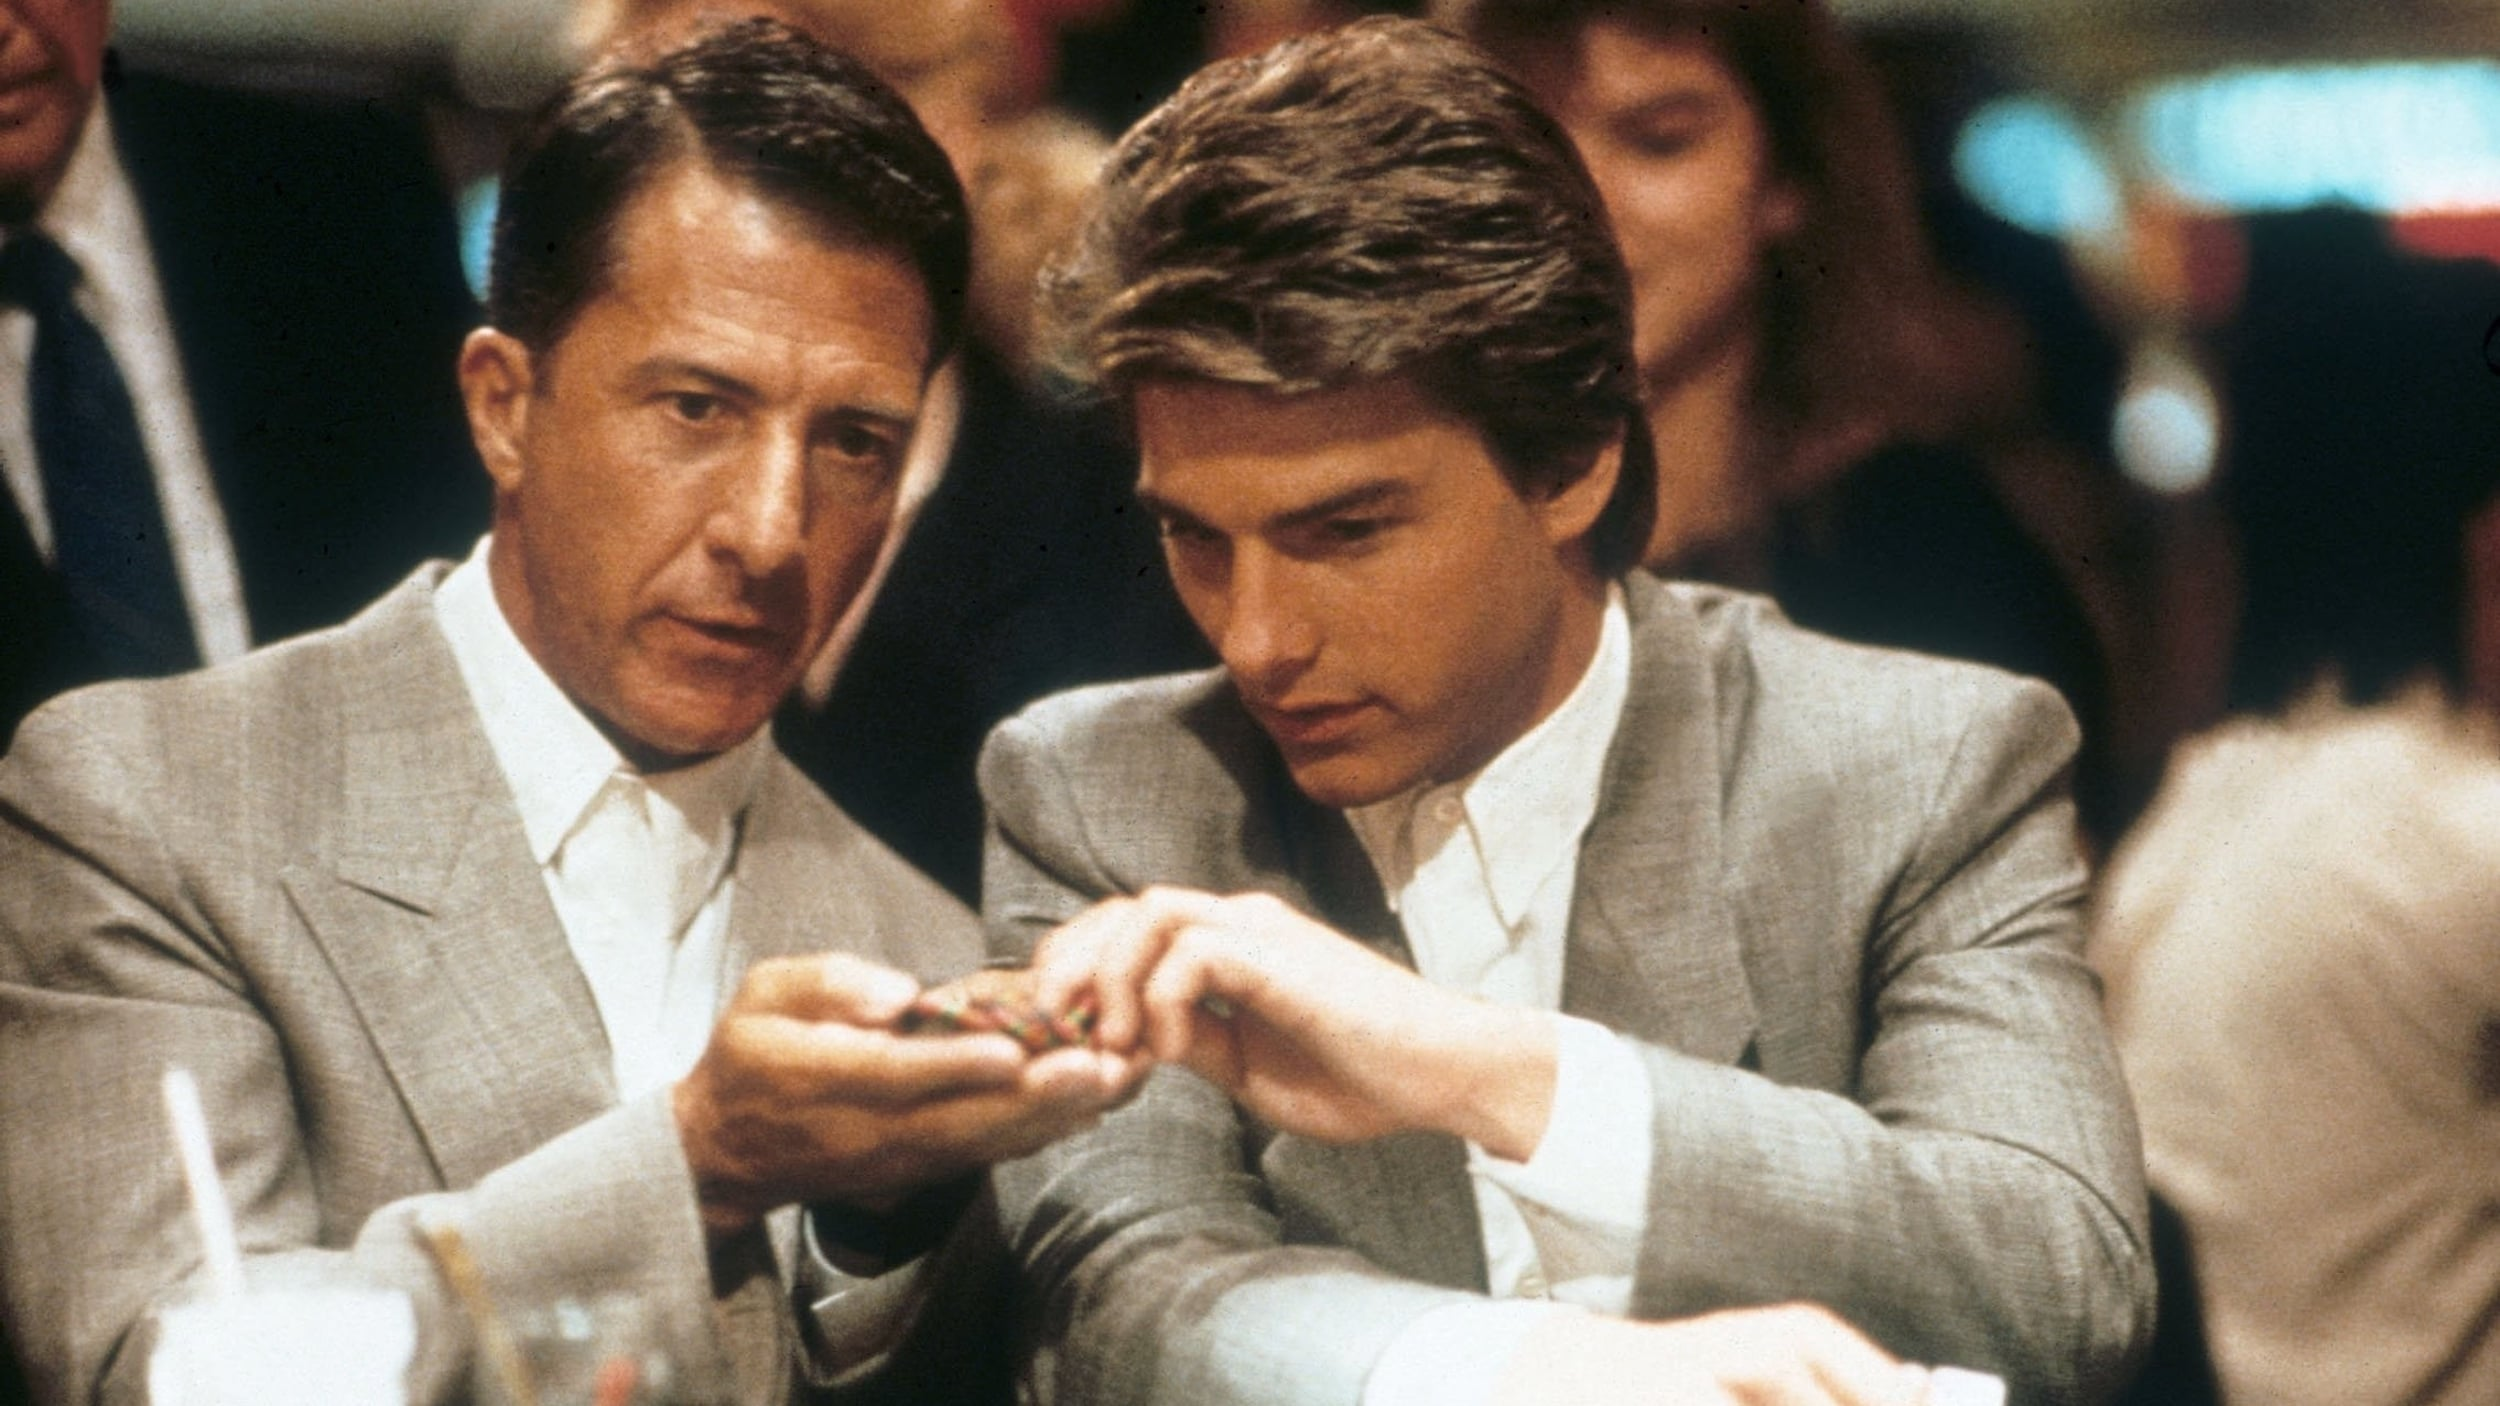 Rain Man Movie Blackjack scene